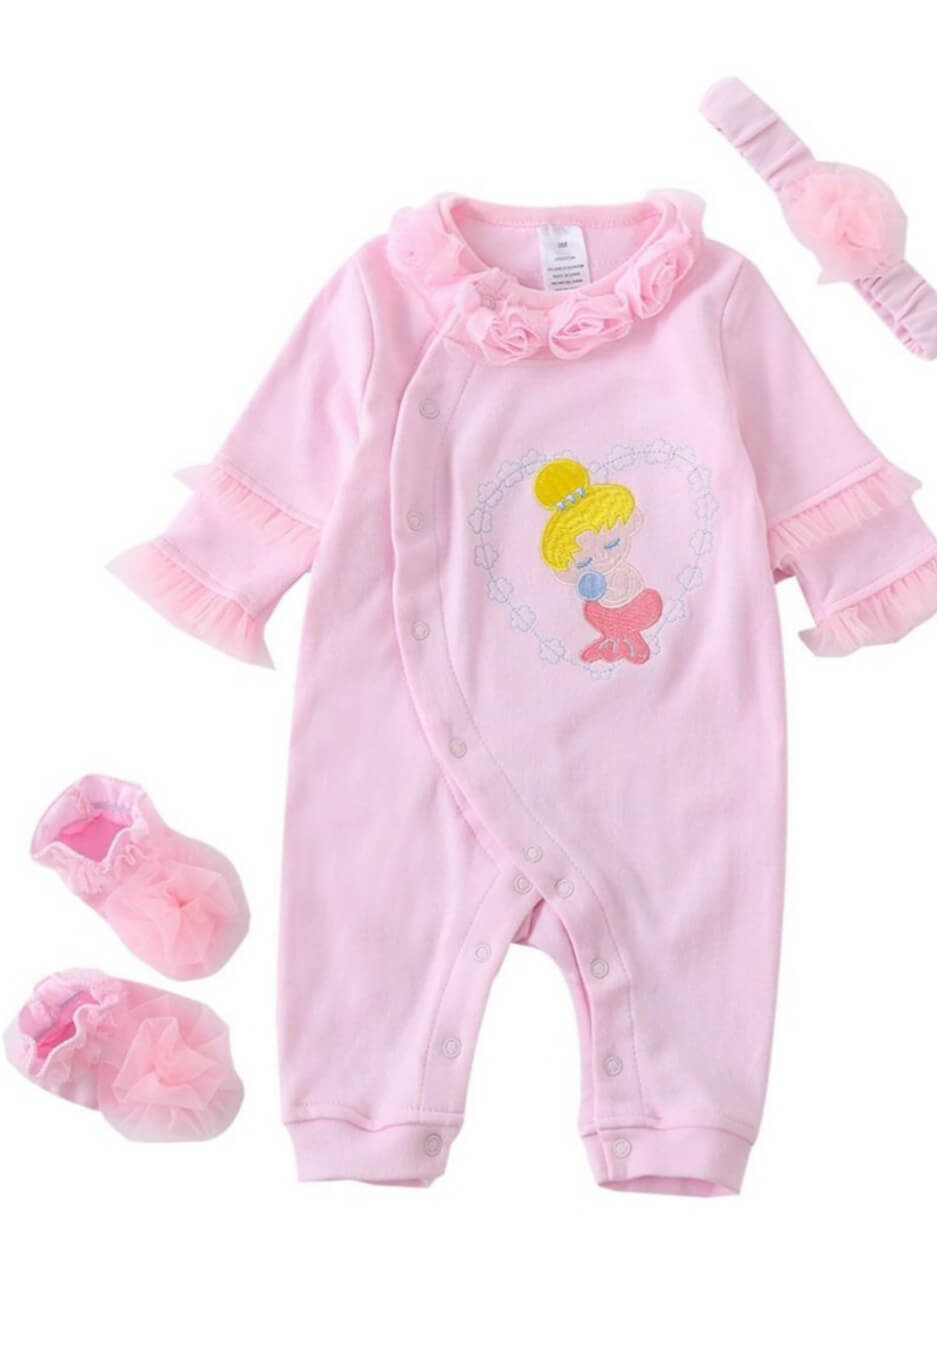 3 piece baby girl romper set for 0 to 3 months